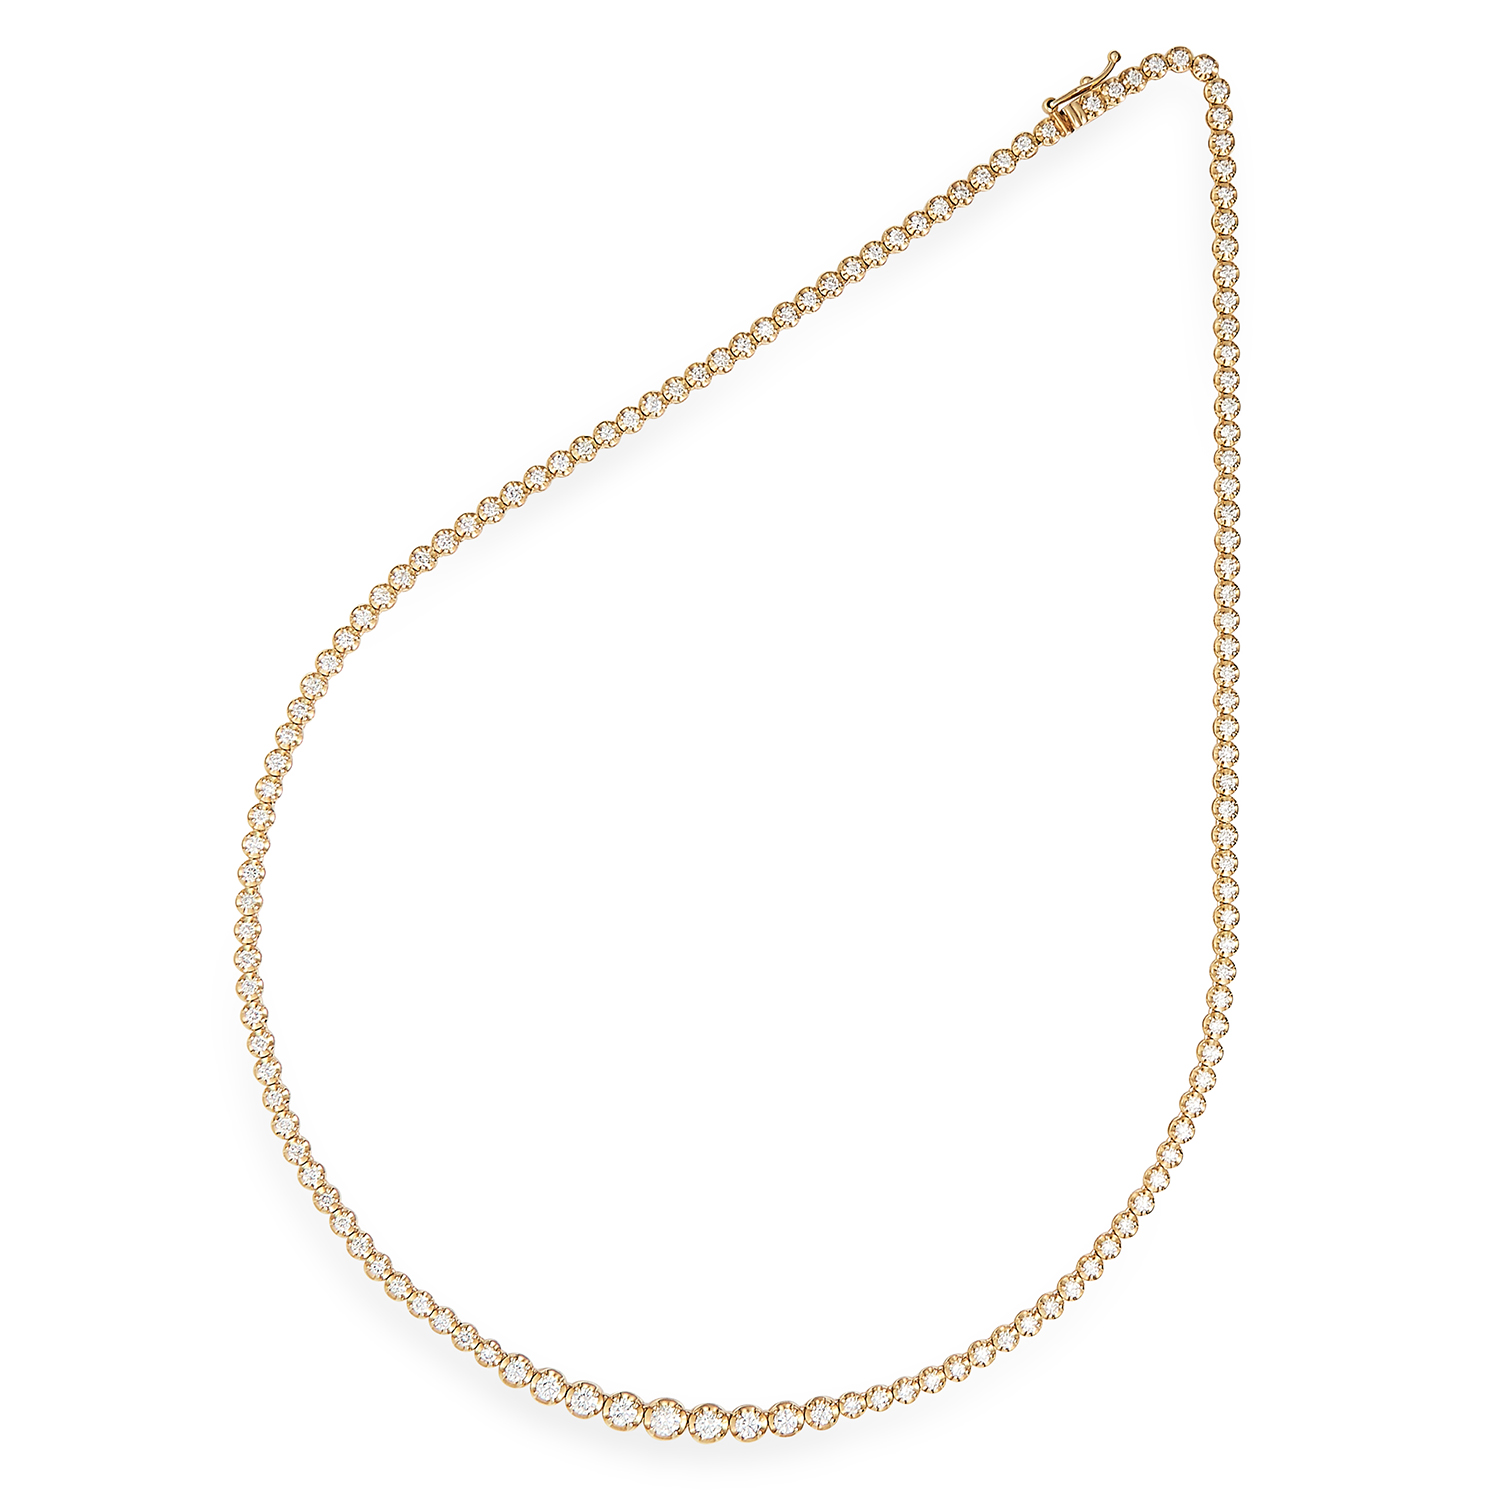 3.00 CARAT DIAMOND RIVIERA NECKLACE in 18ct yellow gold, set with round cut diamonds totalling